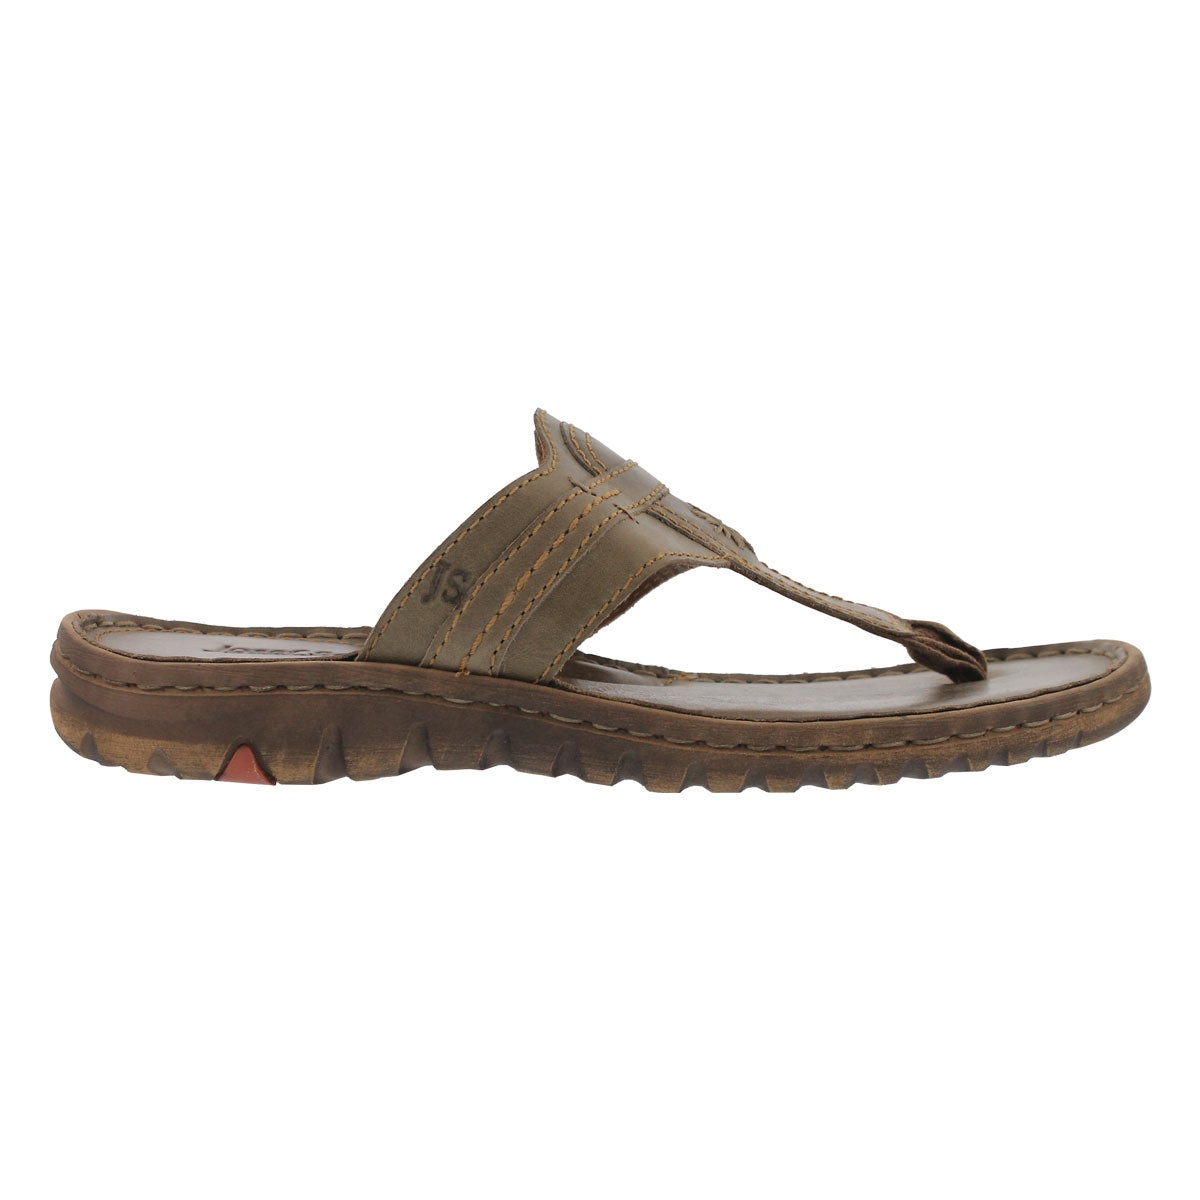 Lds Lucia 09 olive casual thng sandal